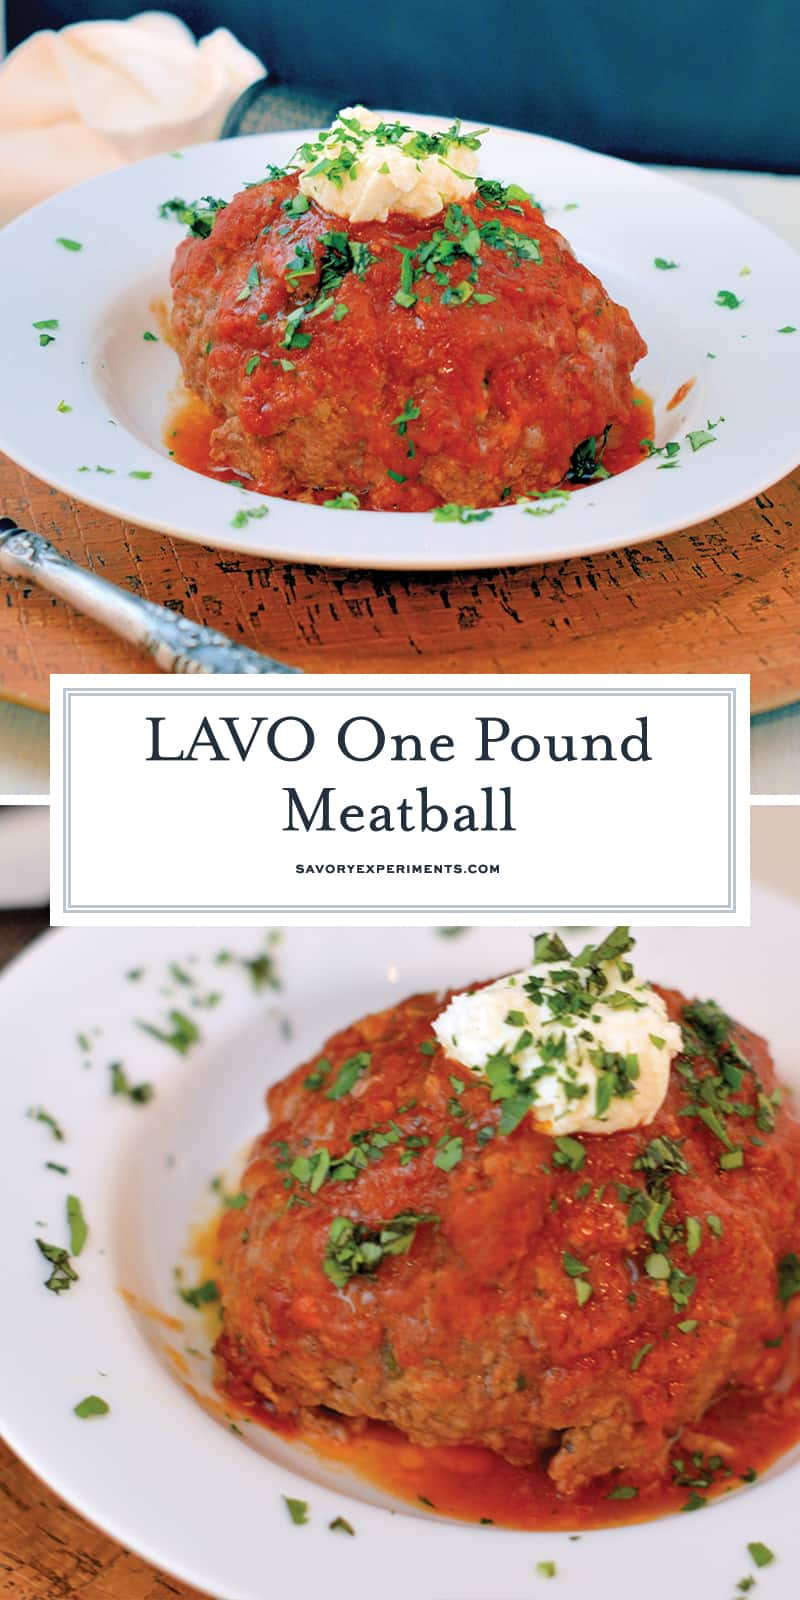 The LAVO One Pound Meatballs are a visual showstopper for any meal. They also happen to be the best giant meatballs you will ever eat. #lavoonepoundmeatballs #meatballs www.savoryexperiments.com